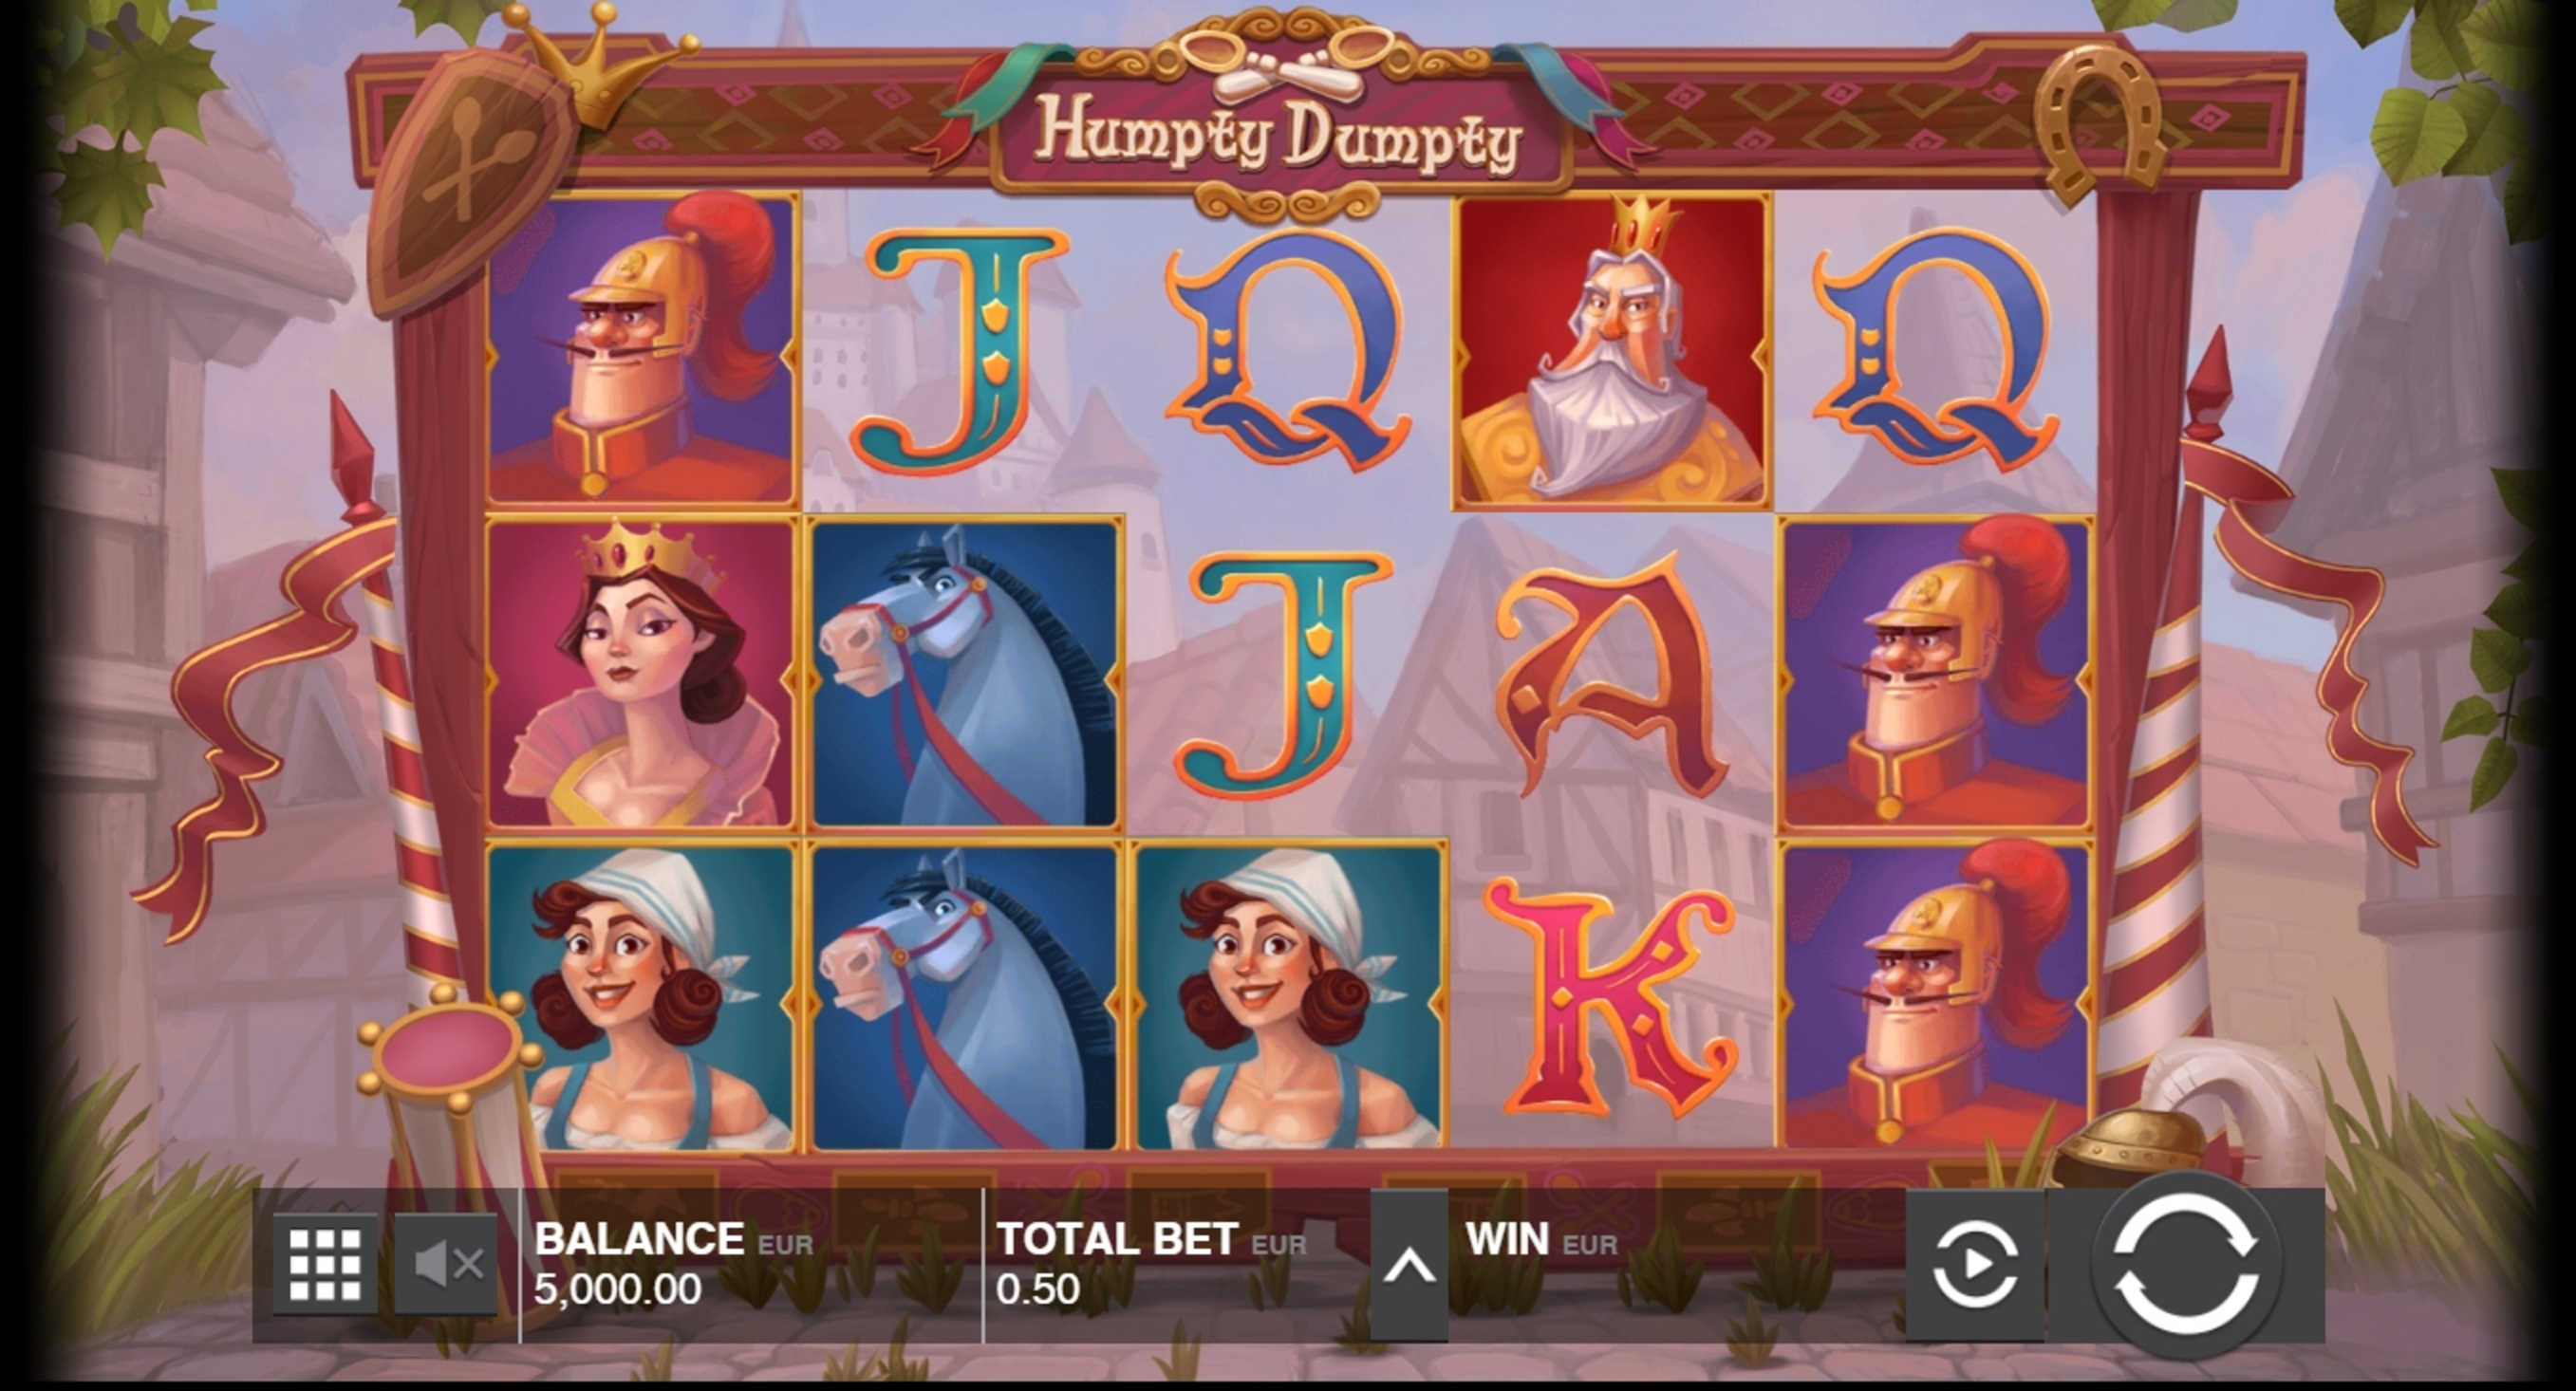 Reels in Humpty Dumpty (Push Gaming) Slot Game by Push Gaming